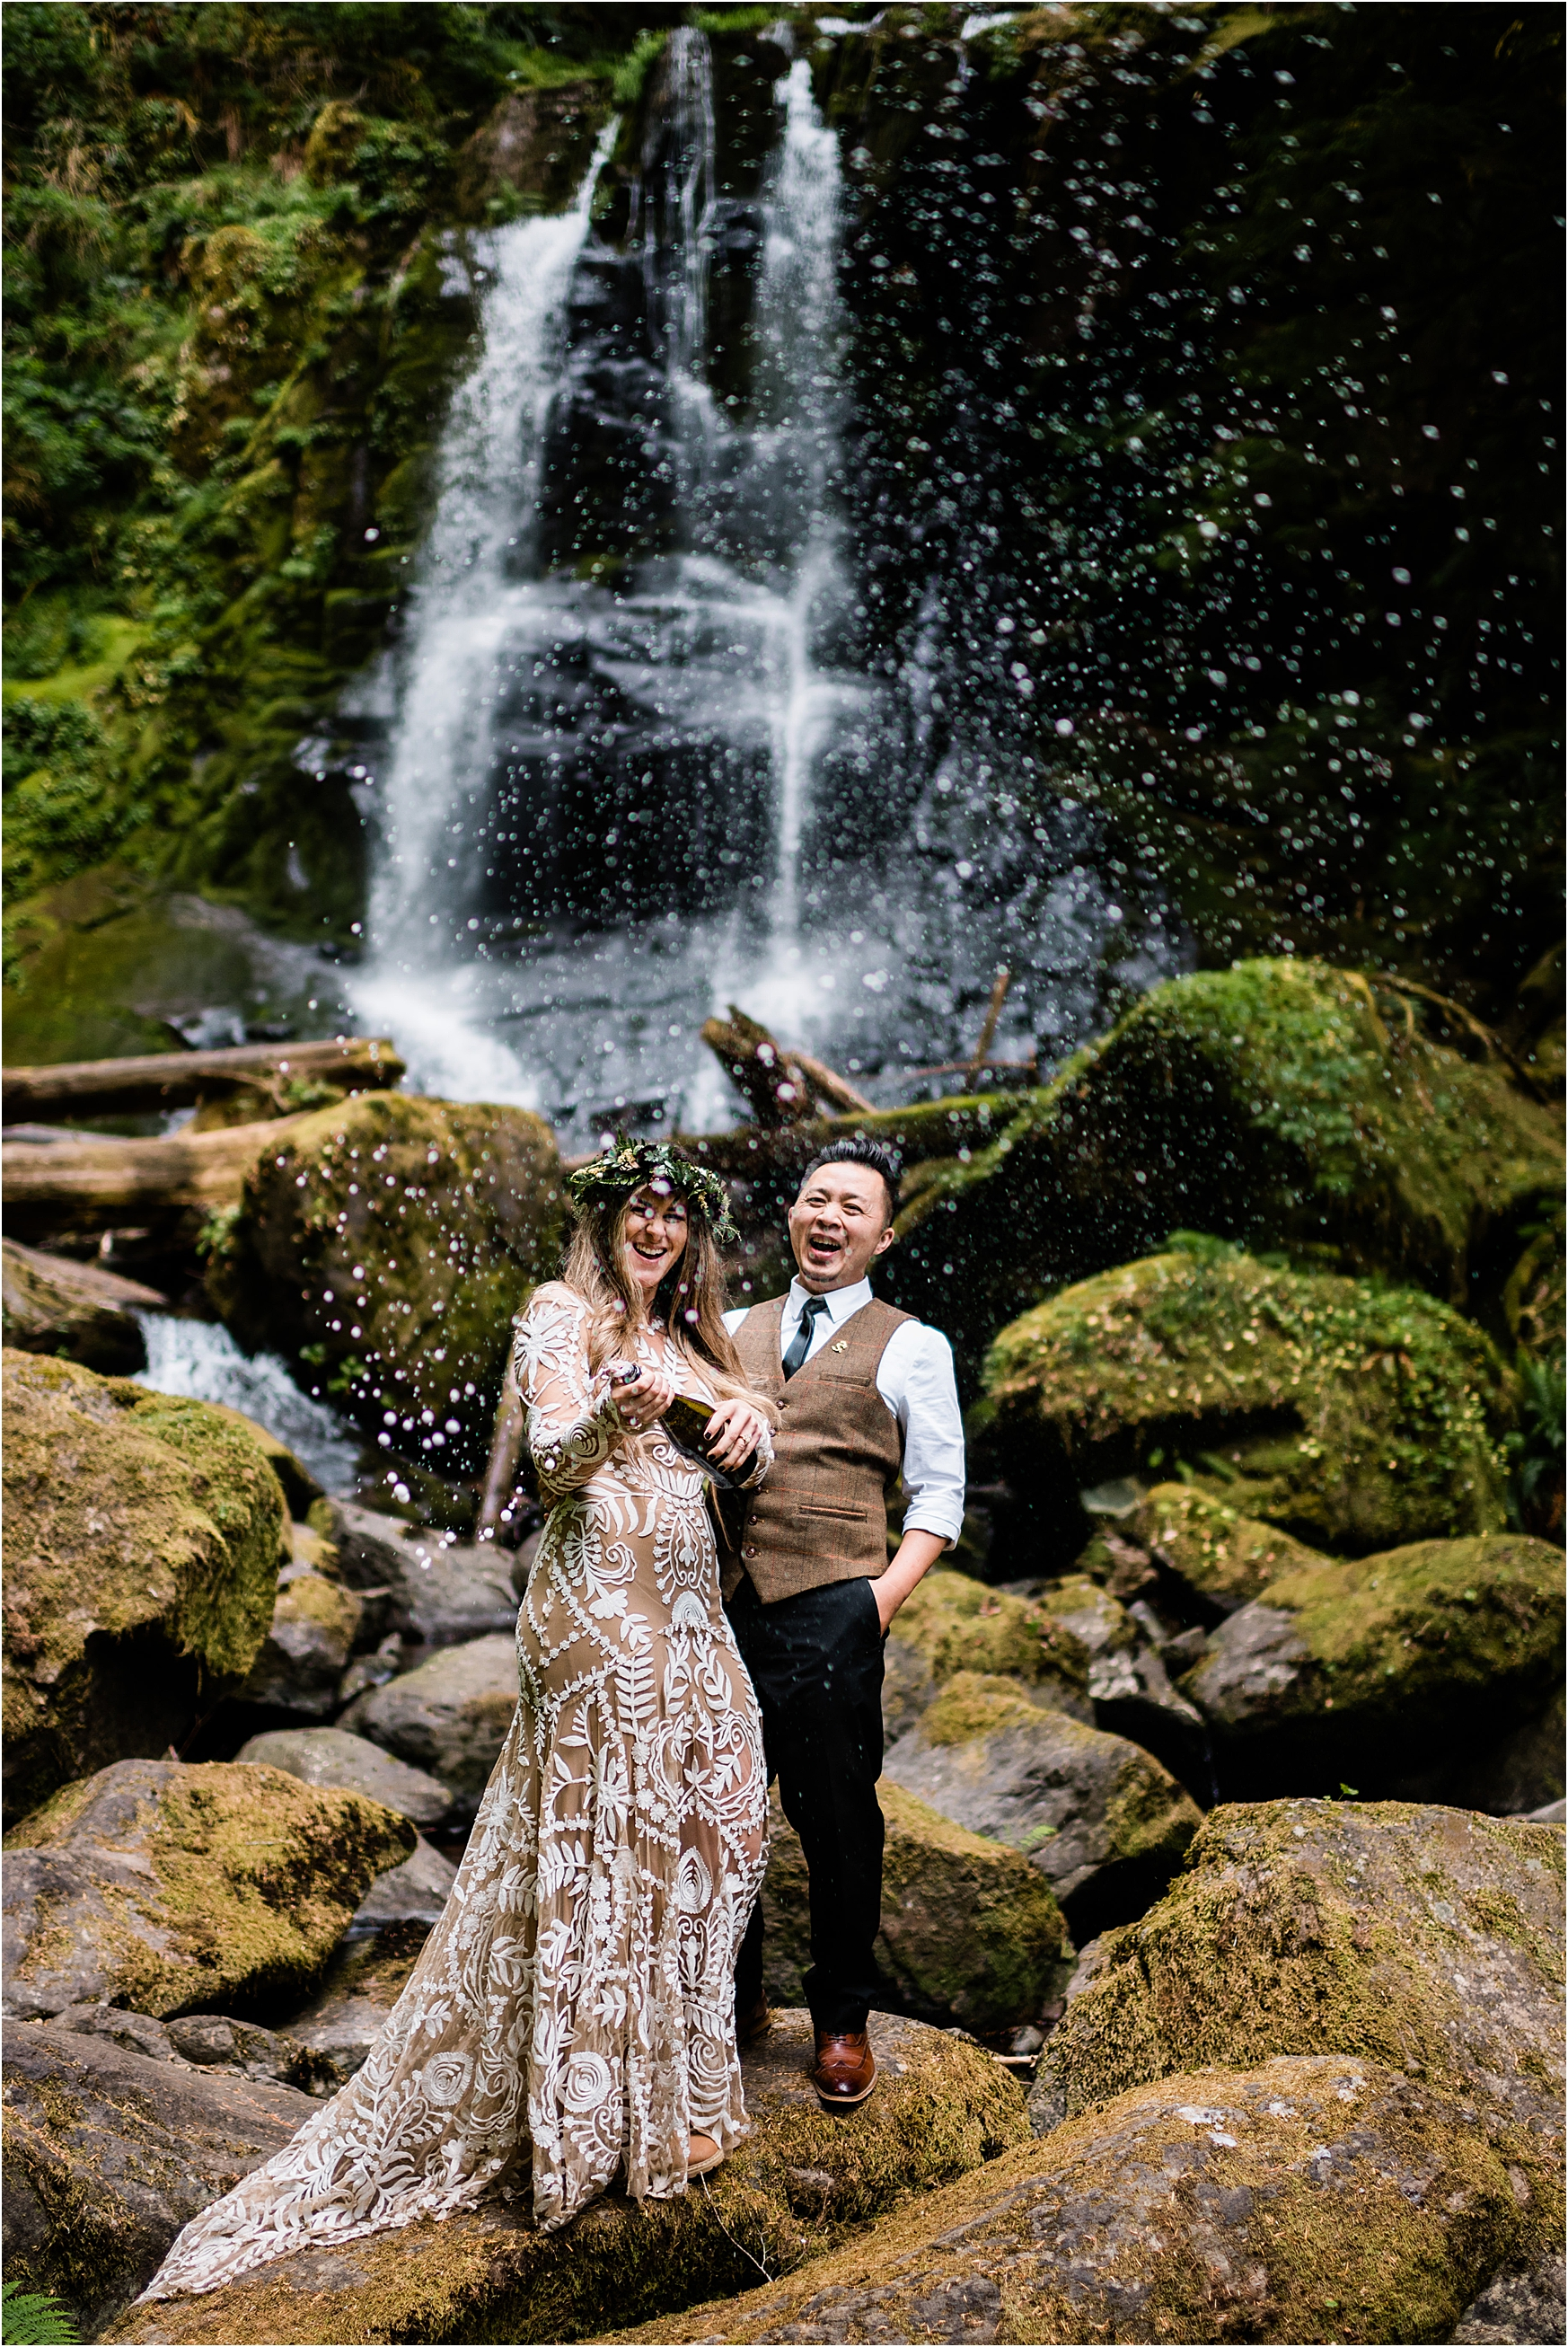 Champagne pop at a waterfall adventure wedding in Oregon. Image by Forthright Photo, Seattle Wedding & Elopement Photographers.